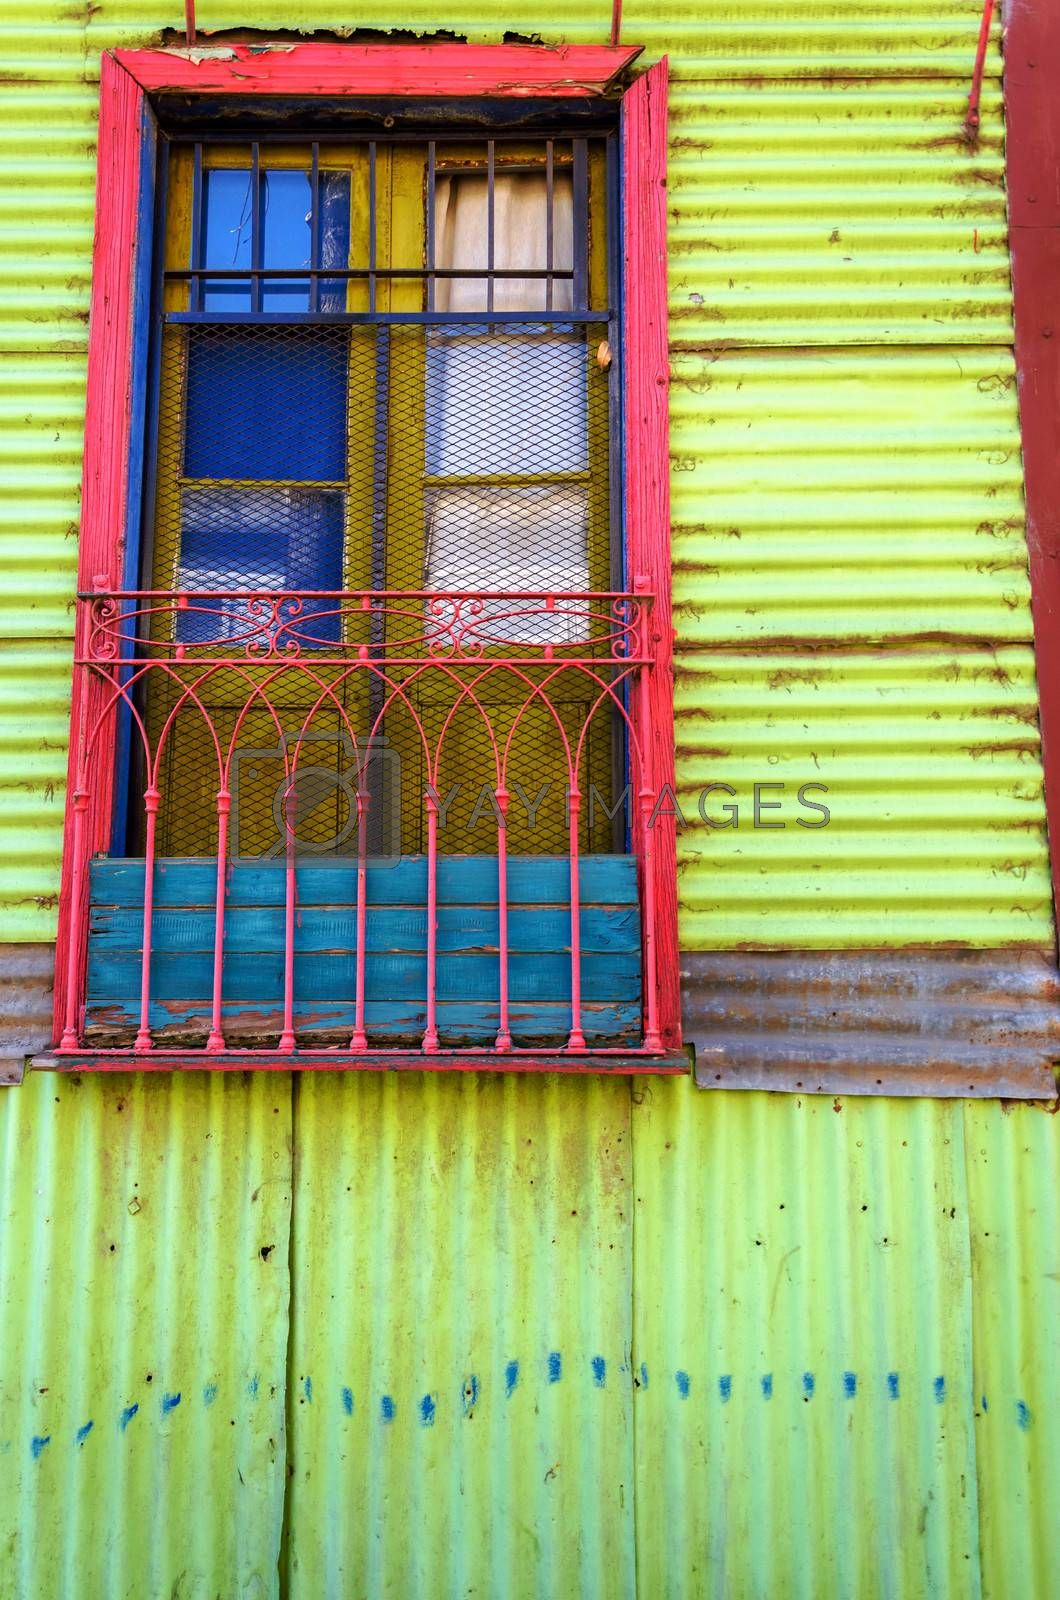 Colorful wall and window in La Boca neighborhood in Buenos Aires